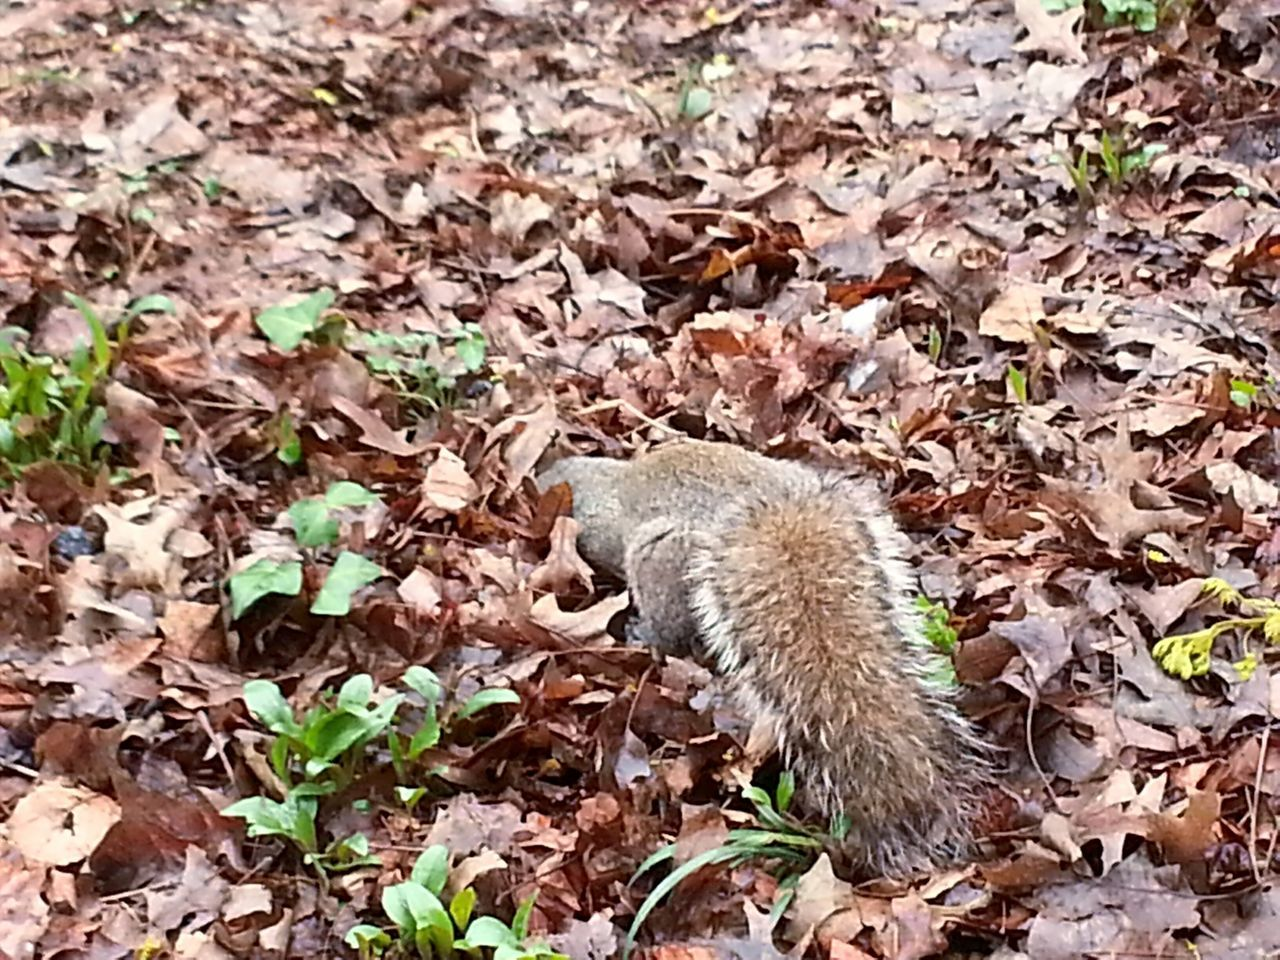 leaf, nature, one animal, field, animals in the wild, animal themes, day, outdoors, no people, autumn, mammal, hedgehog, close-up